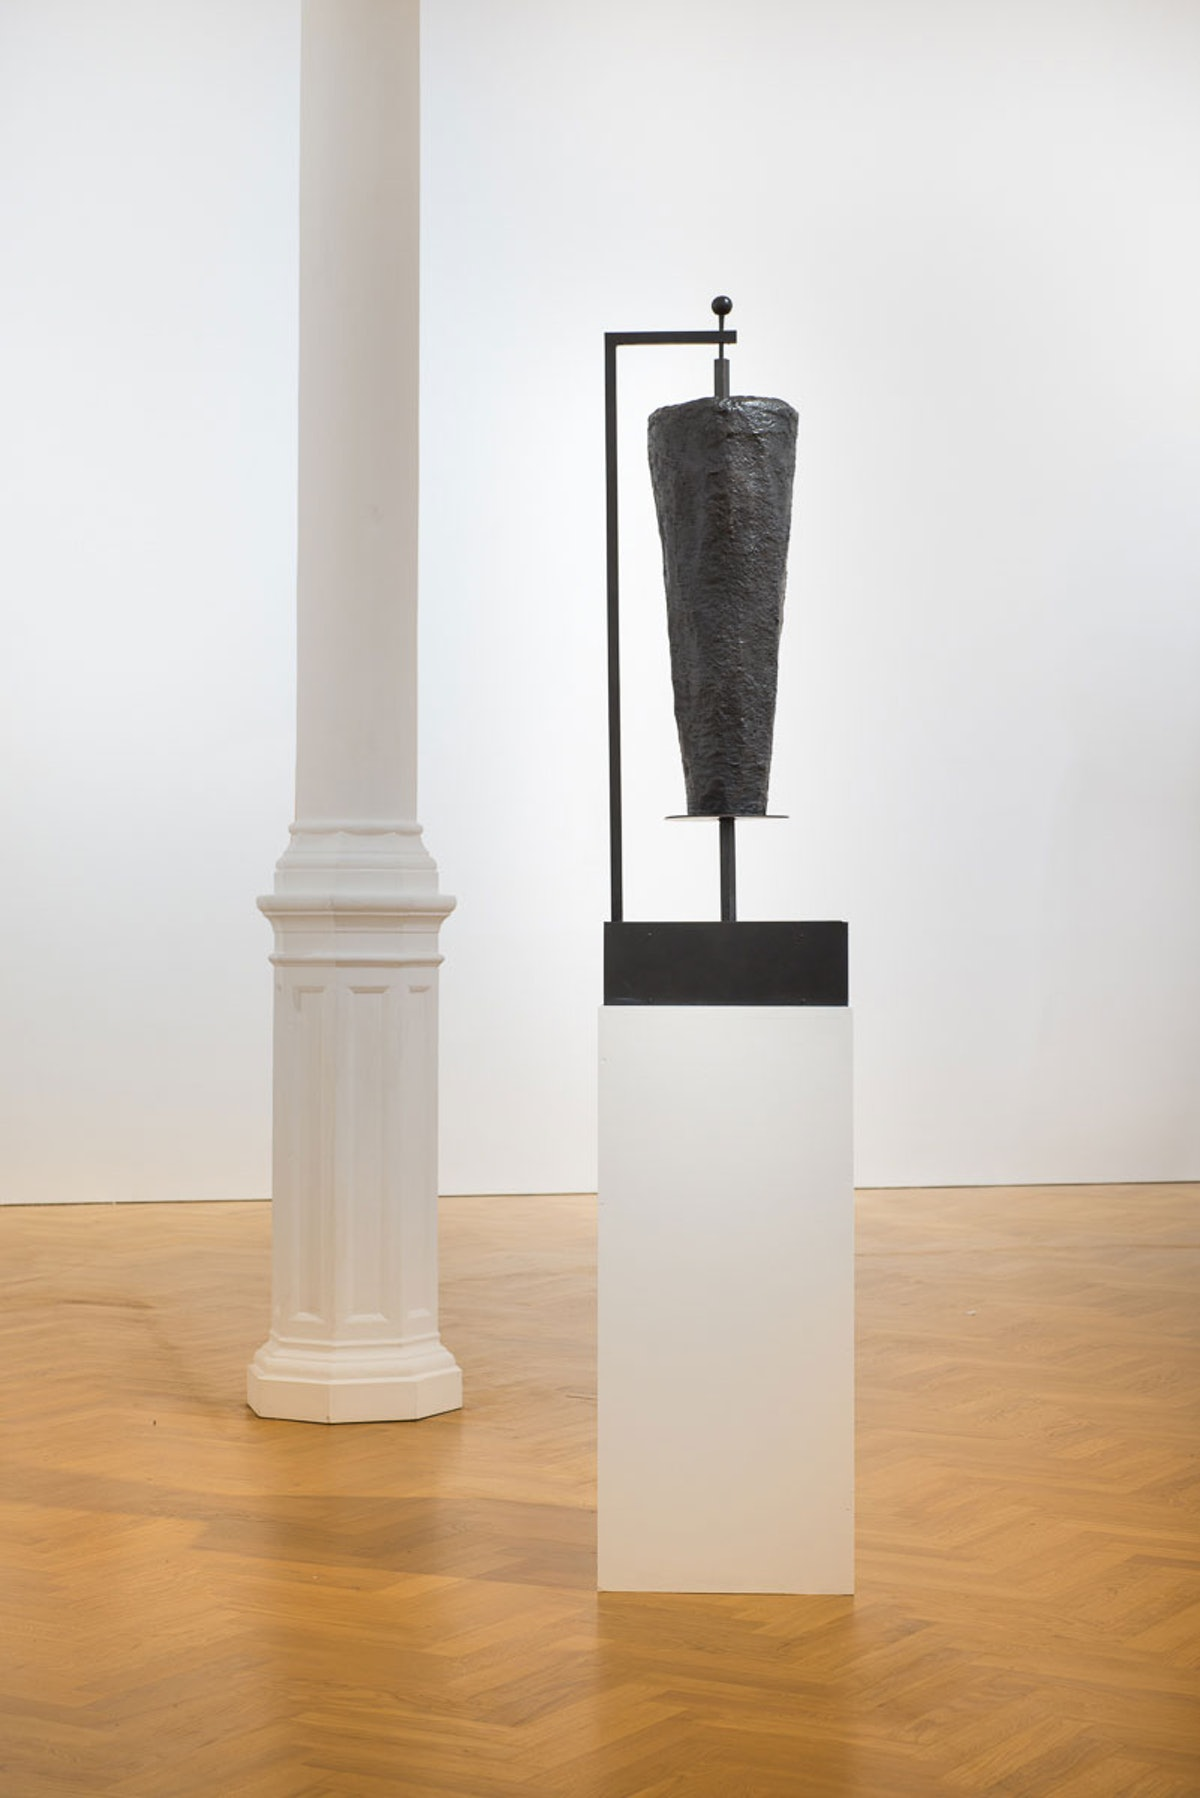 Kebab Machine 2, 1998 by Keith Coventry